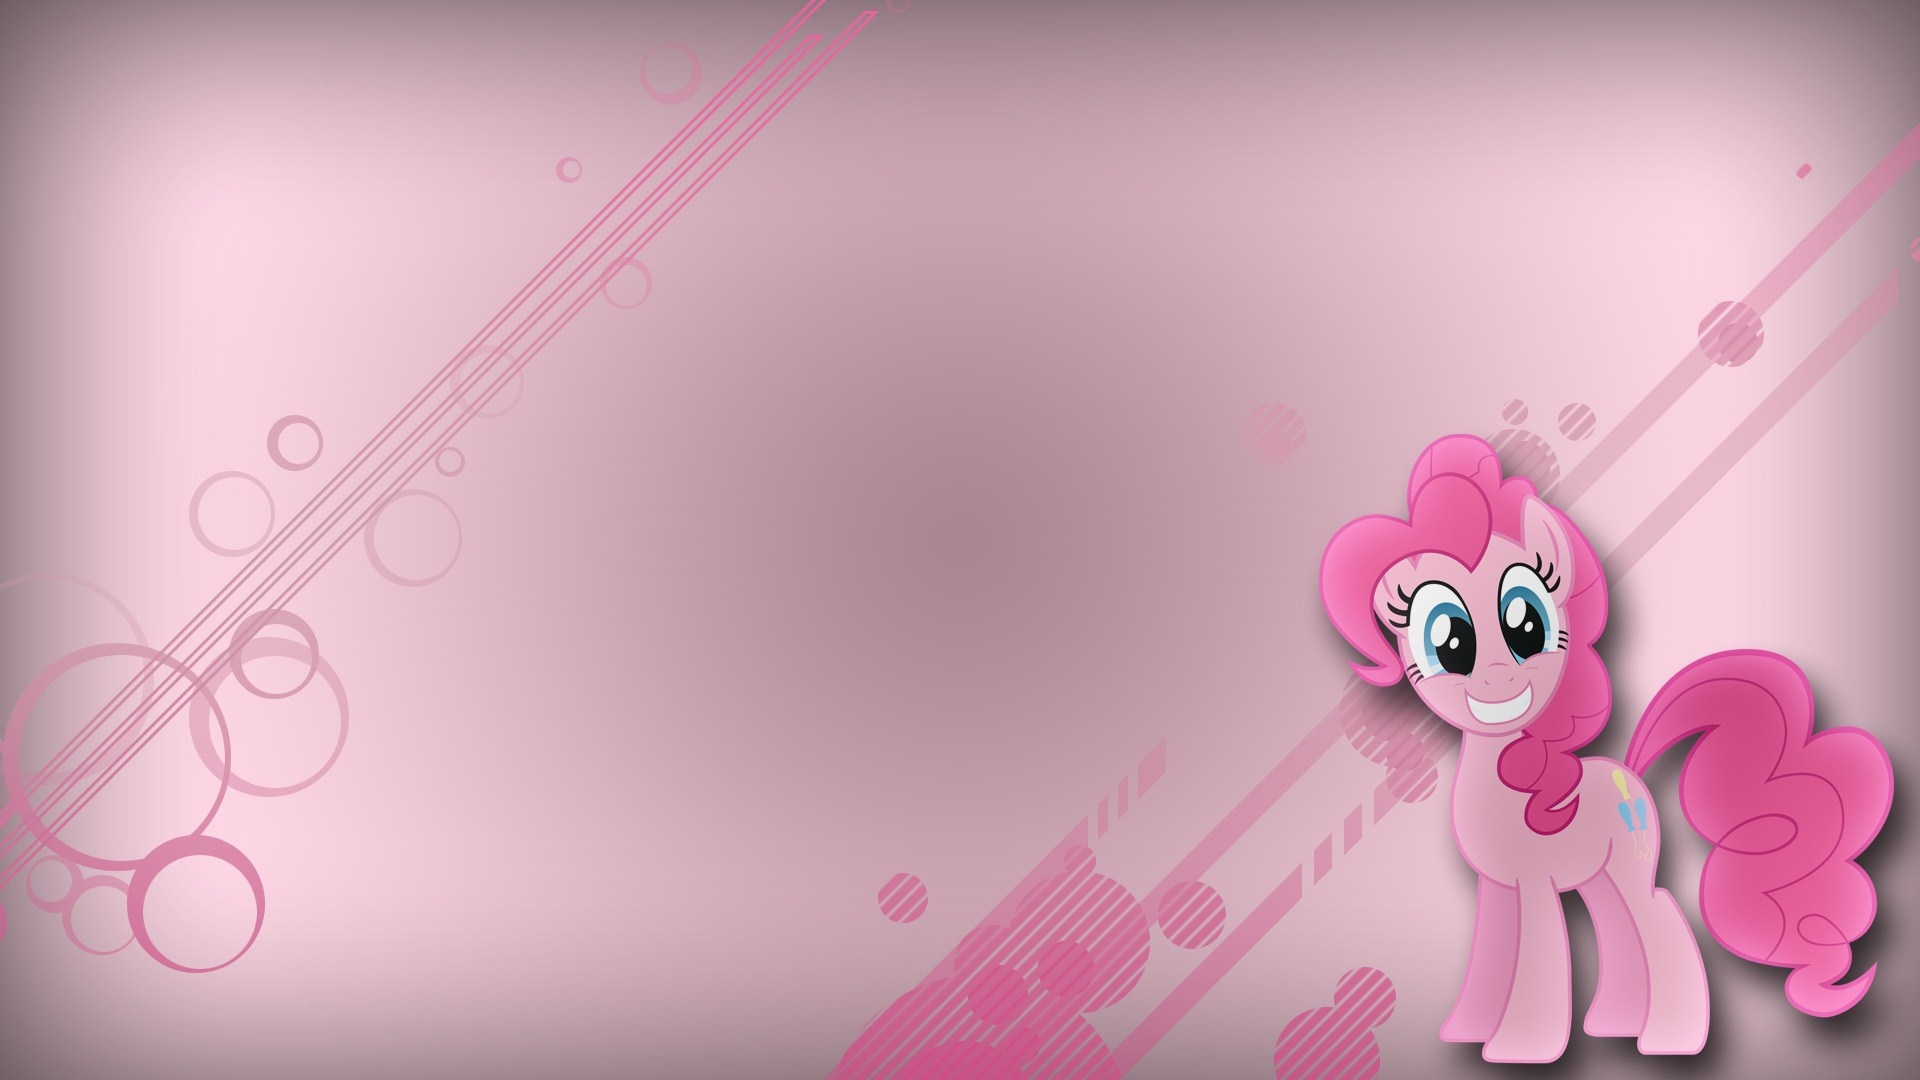 46 My Little Pony Wallpapers Hd On Wallpapersafari